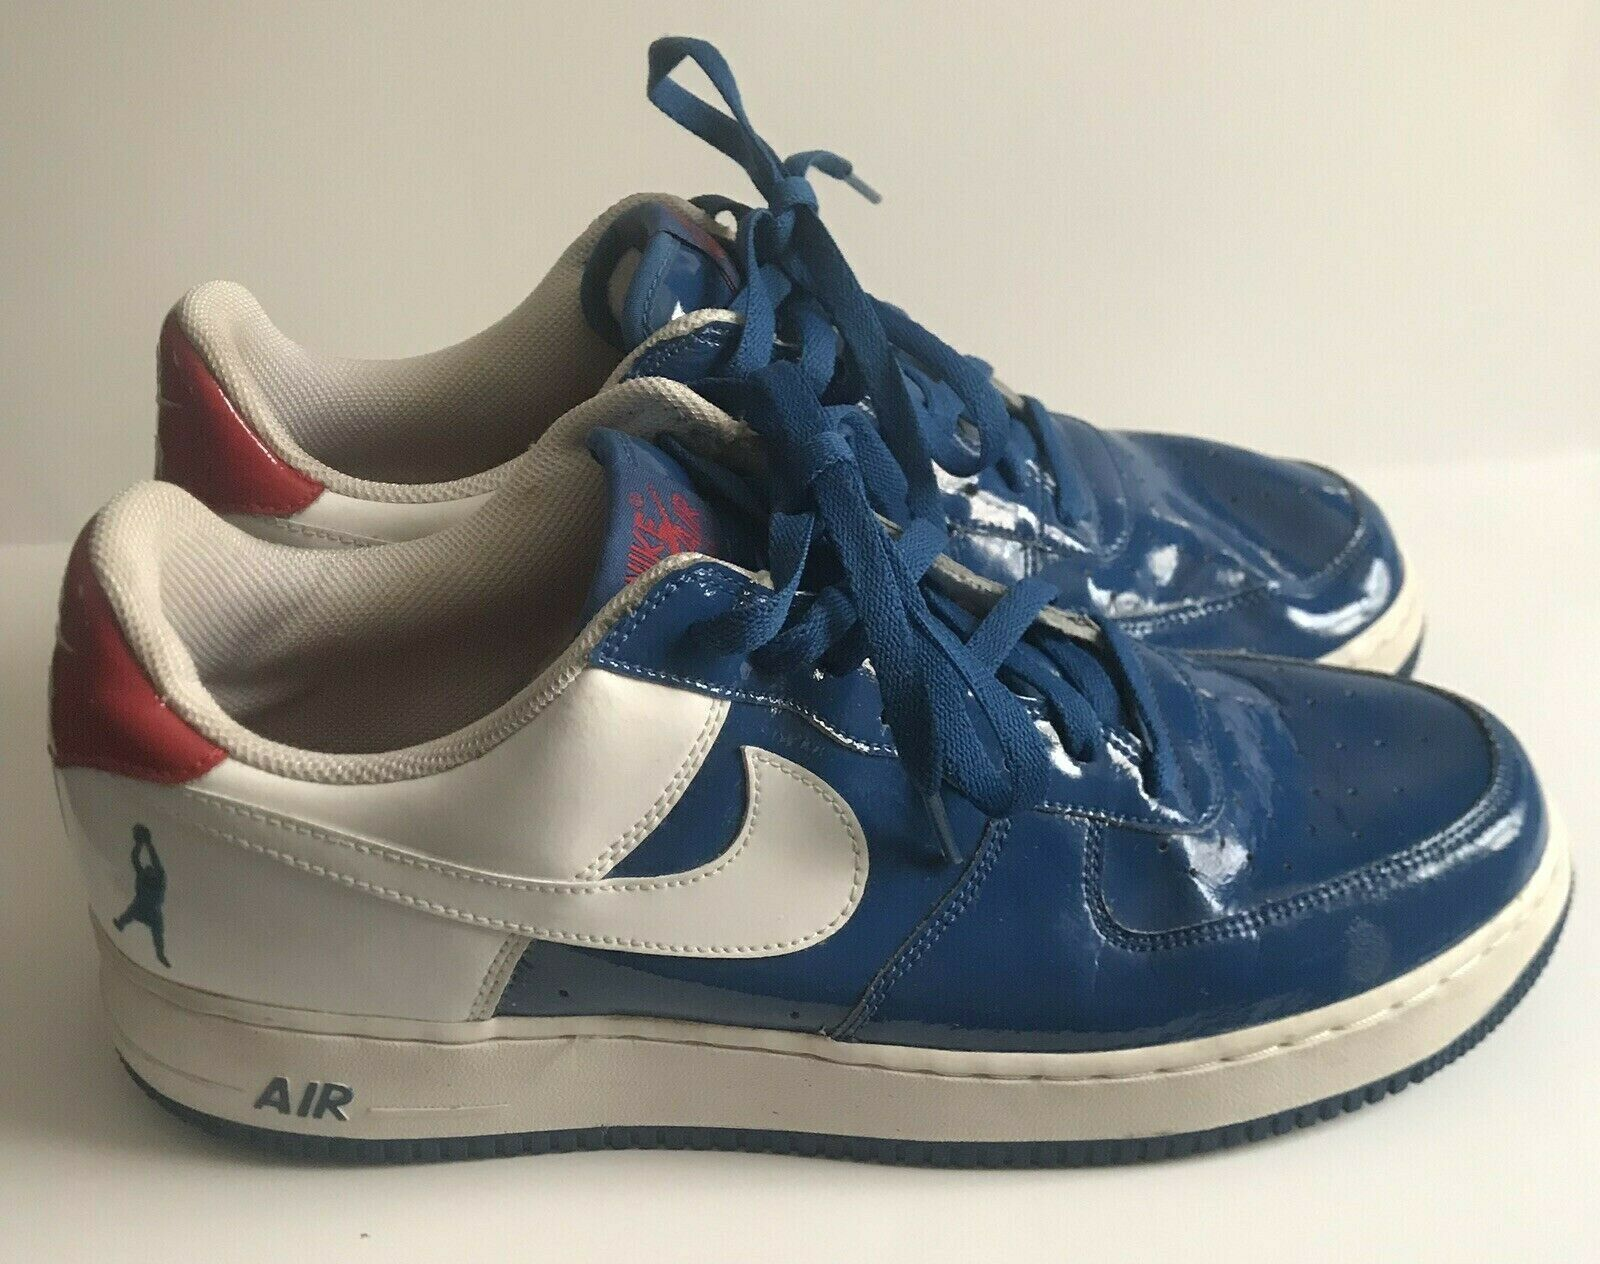 Mens Nike Air Force 1 Sheed Low shoes bluee White Red Size 13